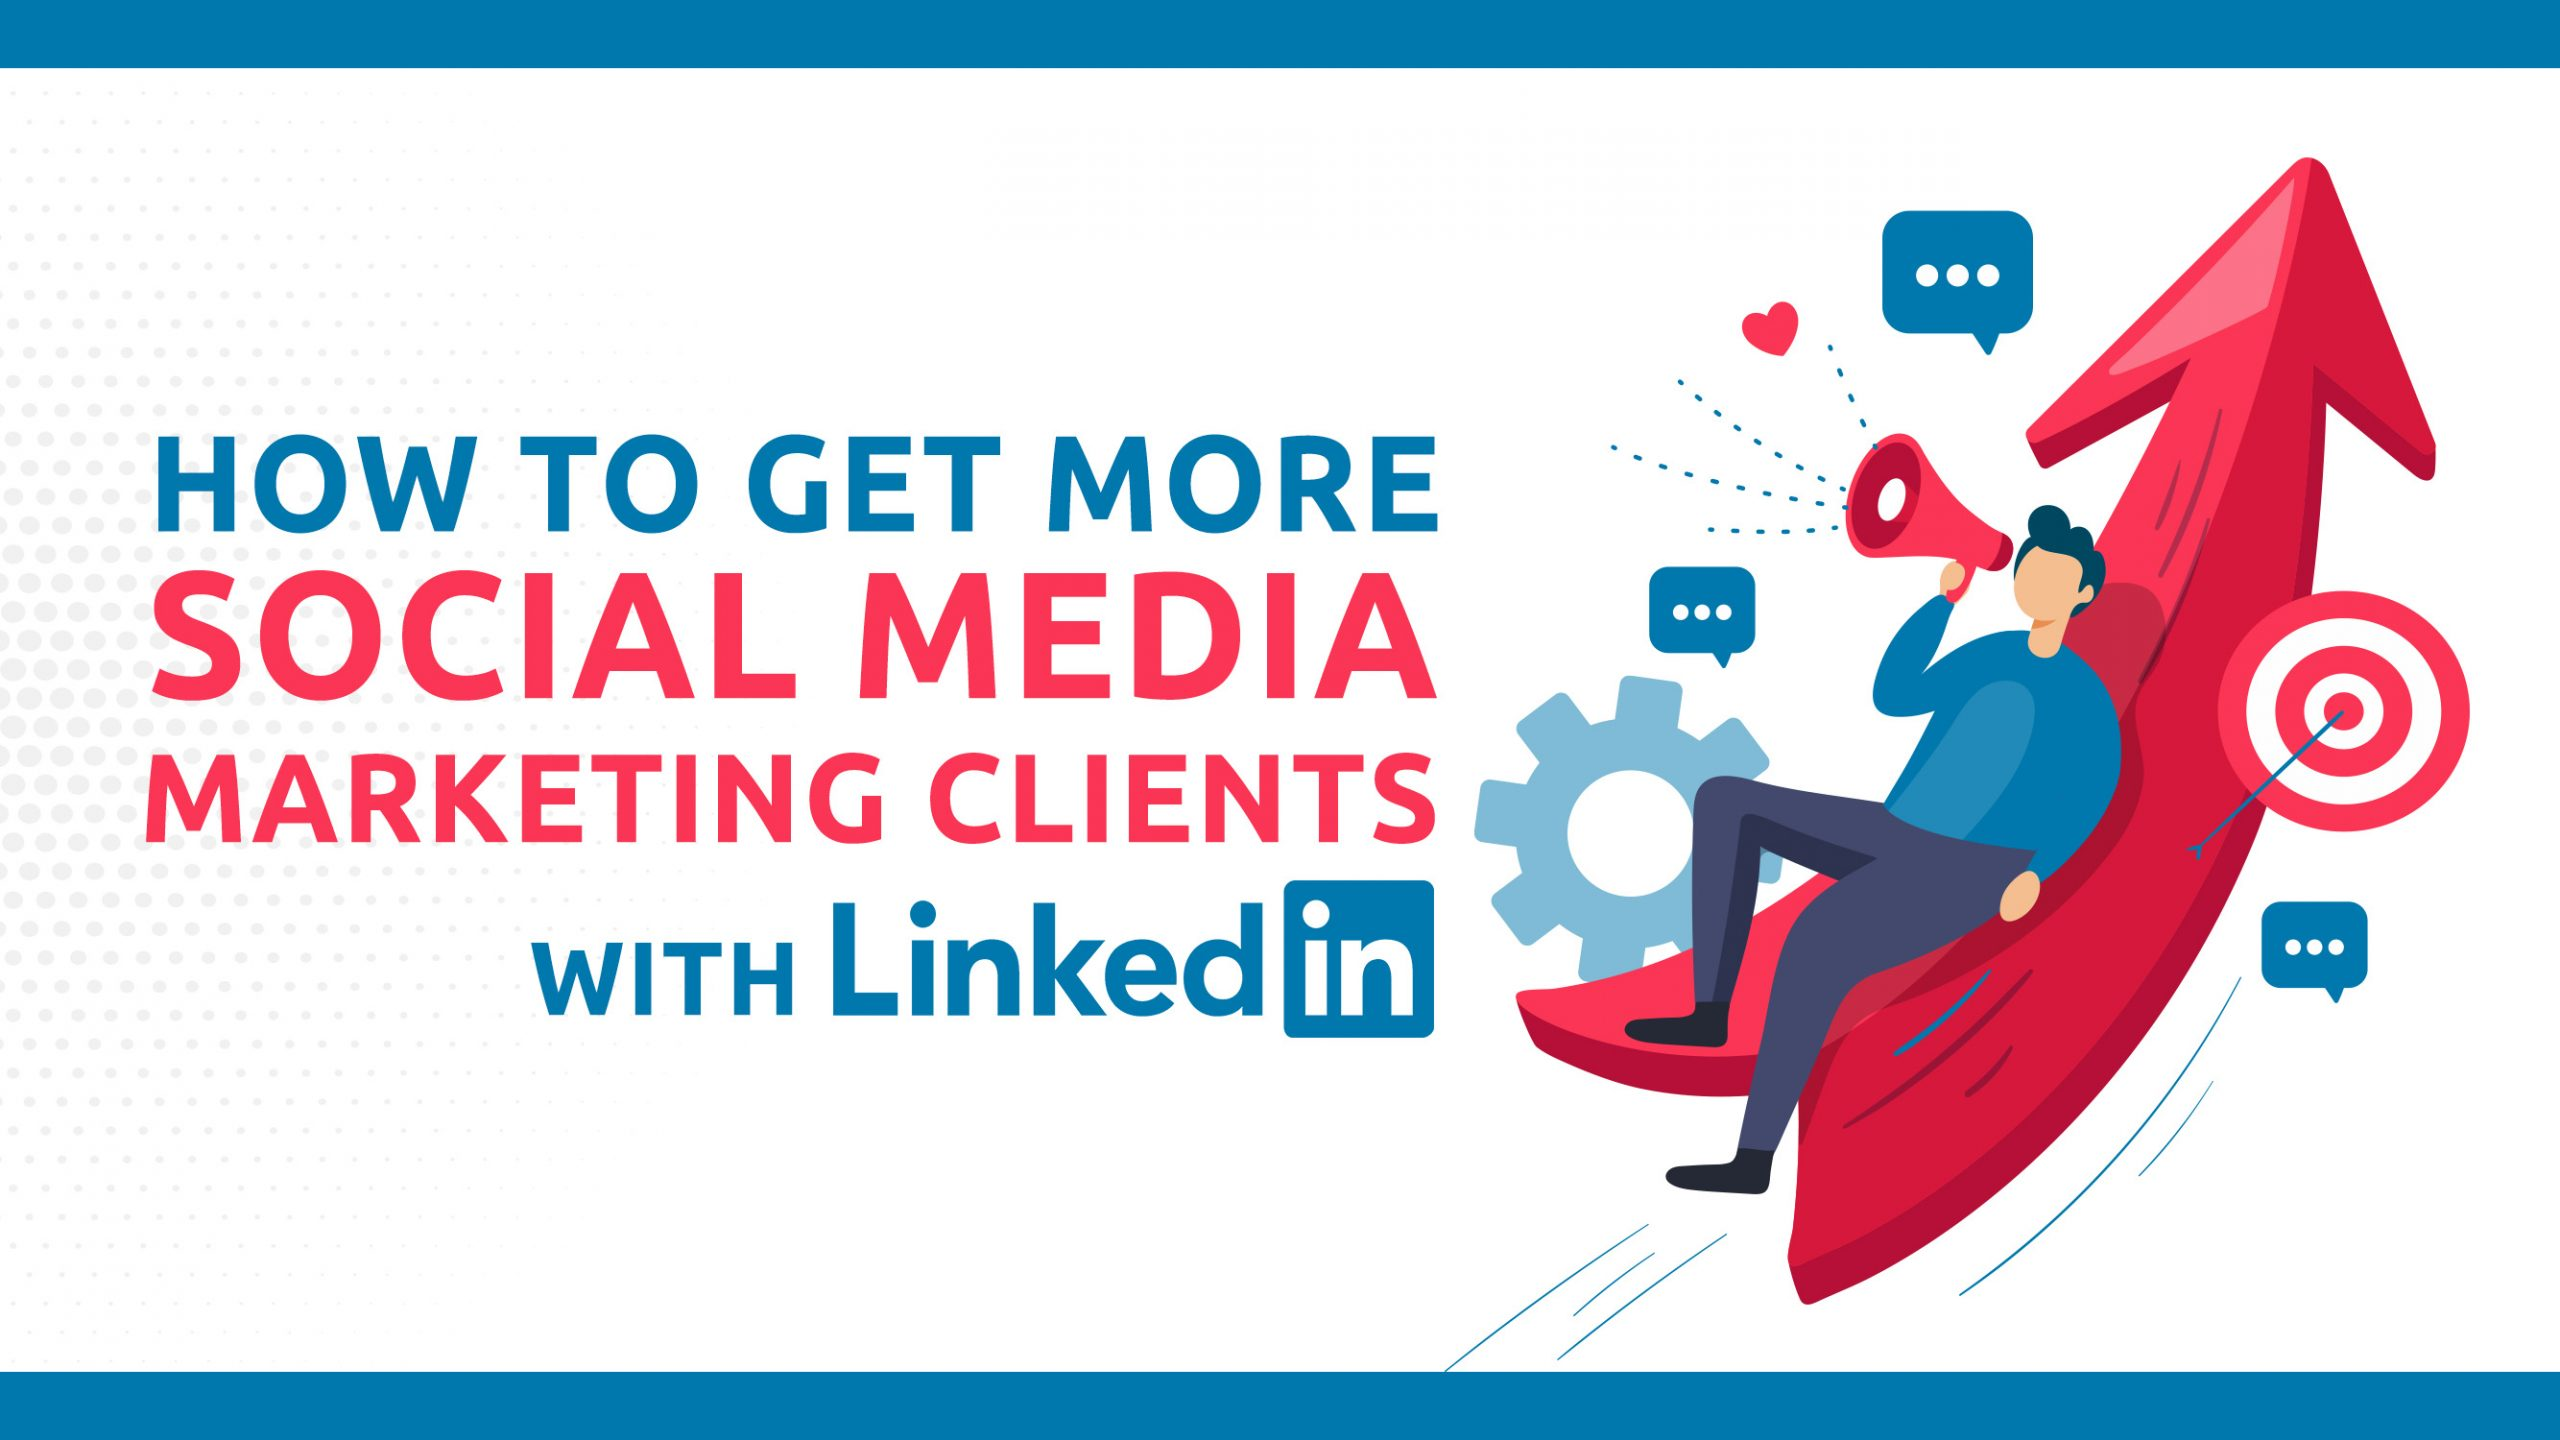 How To Use LinkedIn To Get More Social Media Marketing Clients